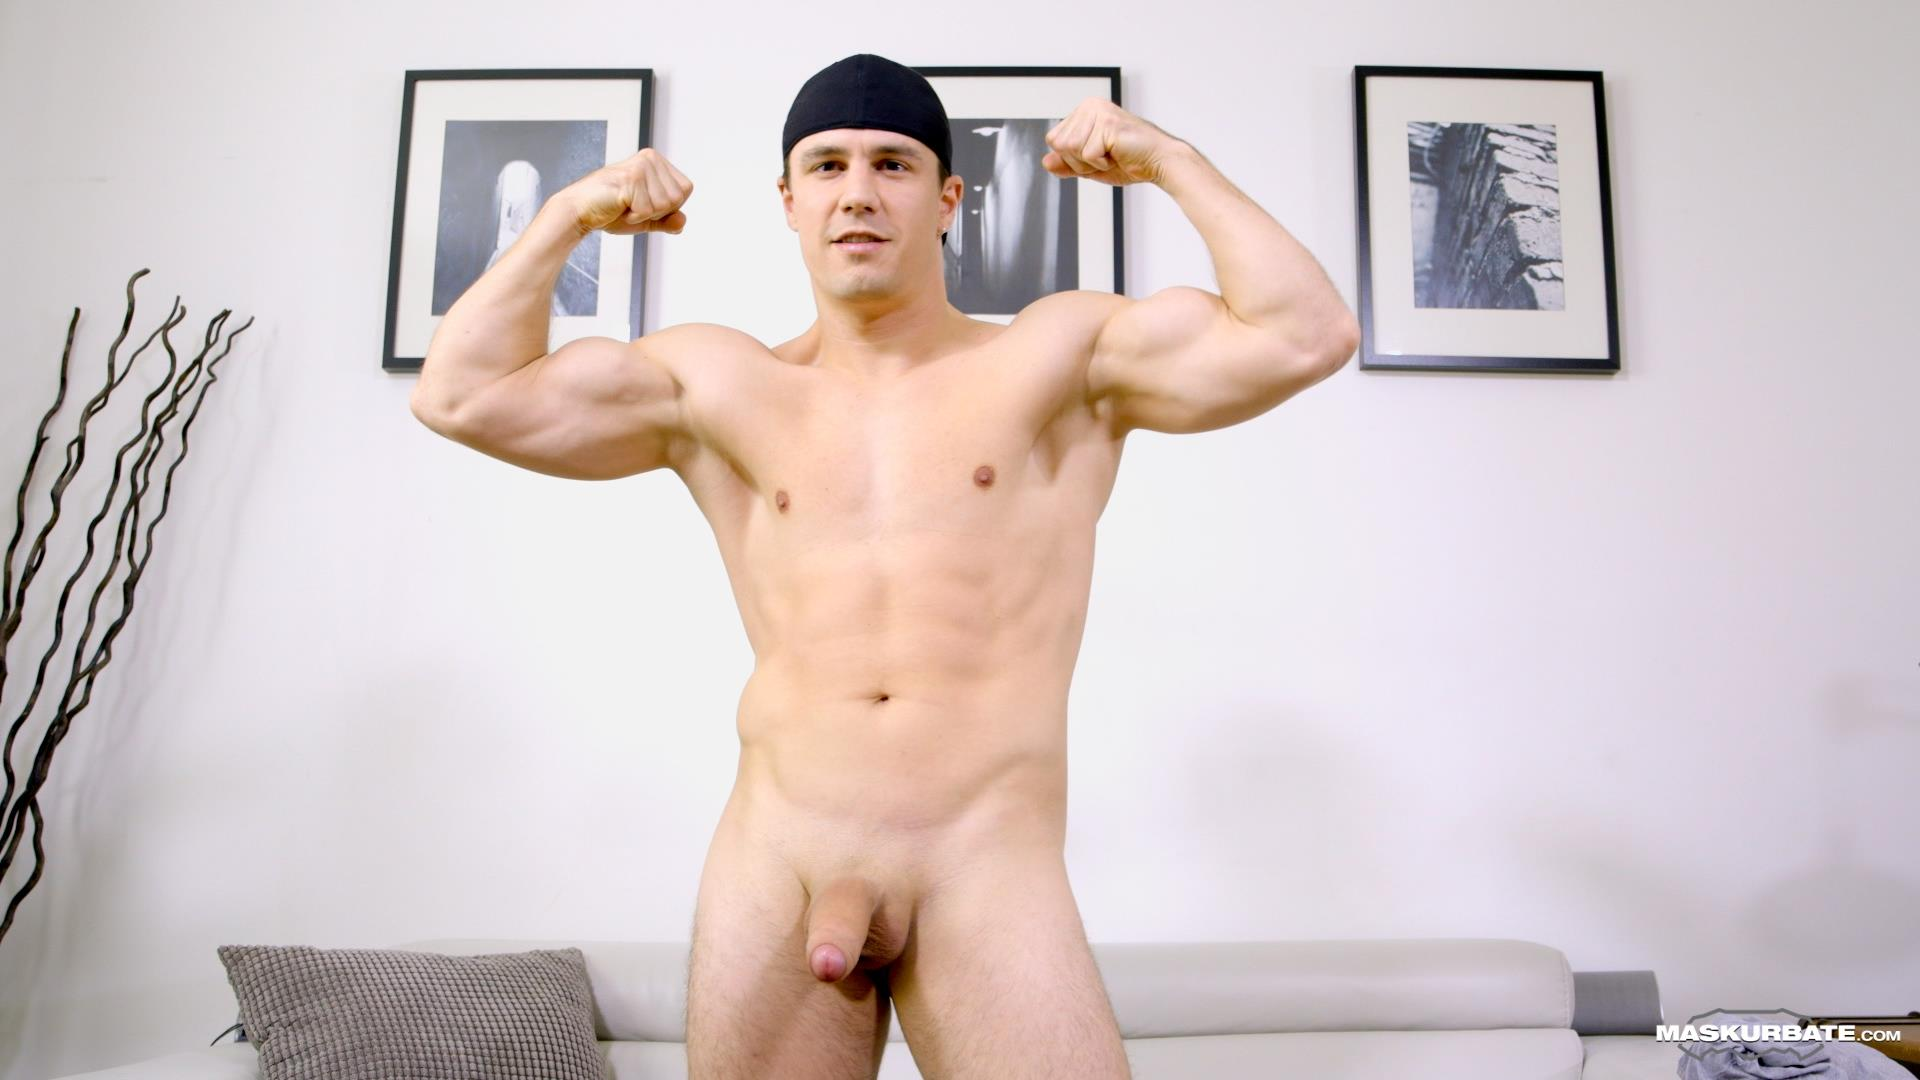 Maskurbate Ricky Muscl Jock Stroking His Big Uncut Cock Amateur Gay Porn 06 Smooth Muscle Jock Stroking His Big Uncut Cock